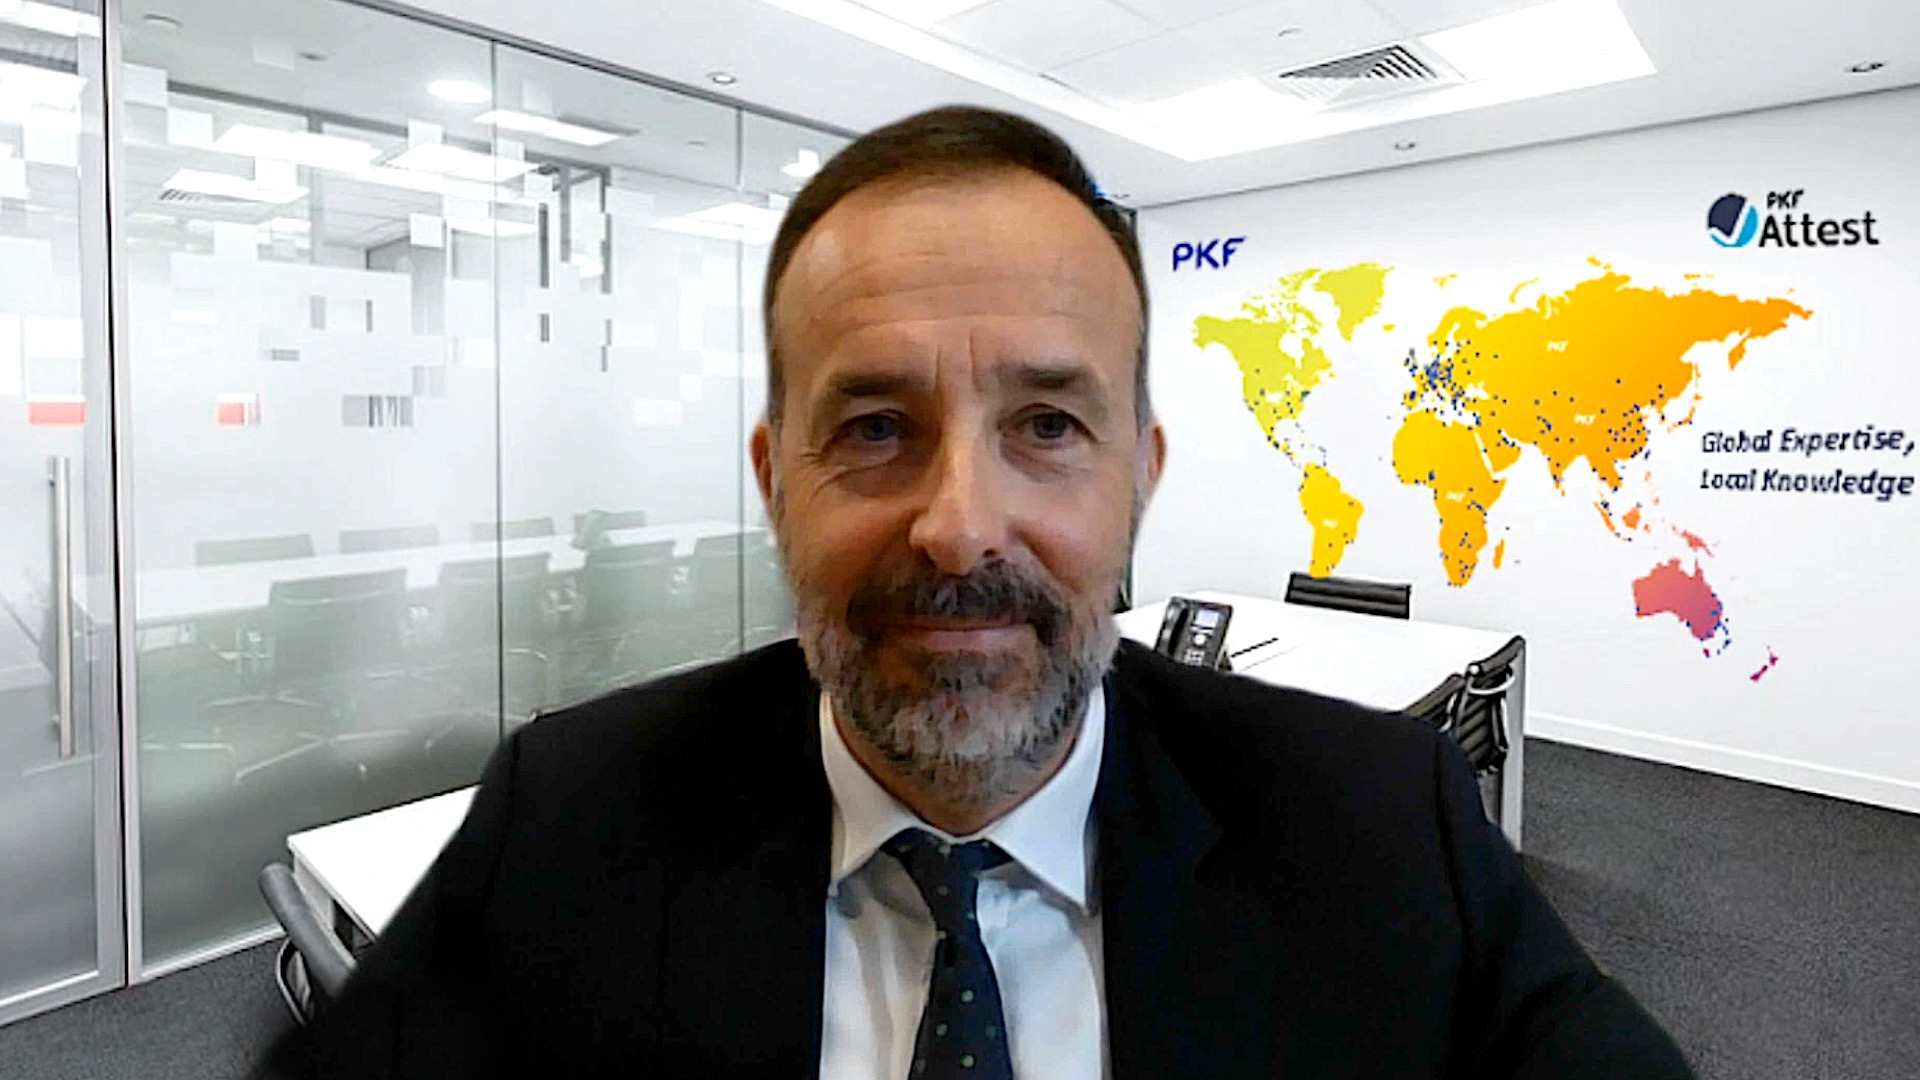 Mariano Aróstegui, Director Área Corporate Compliance en PFK Attest